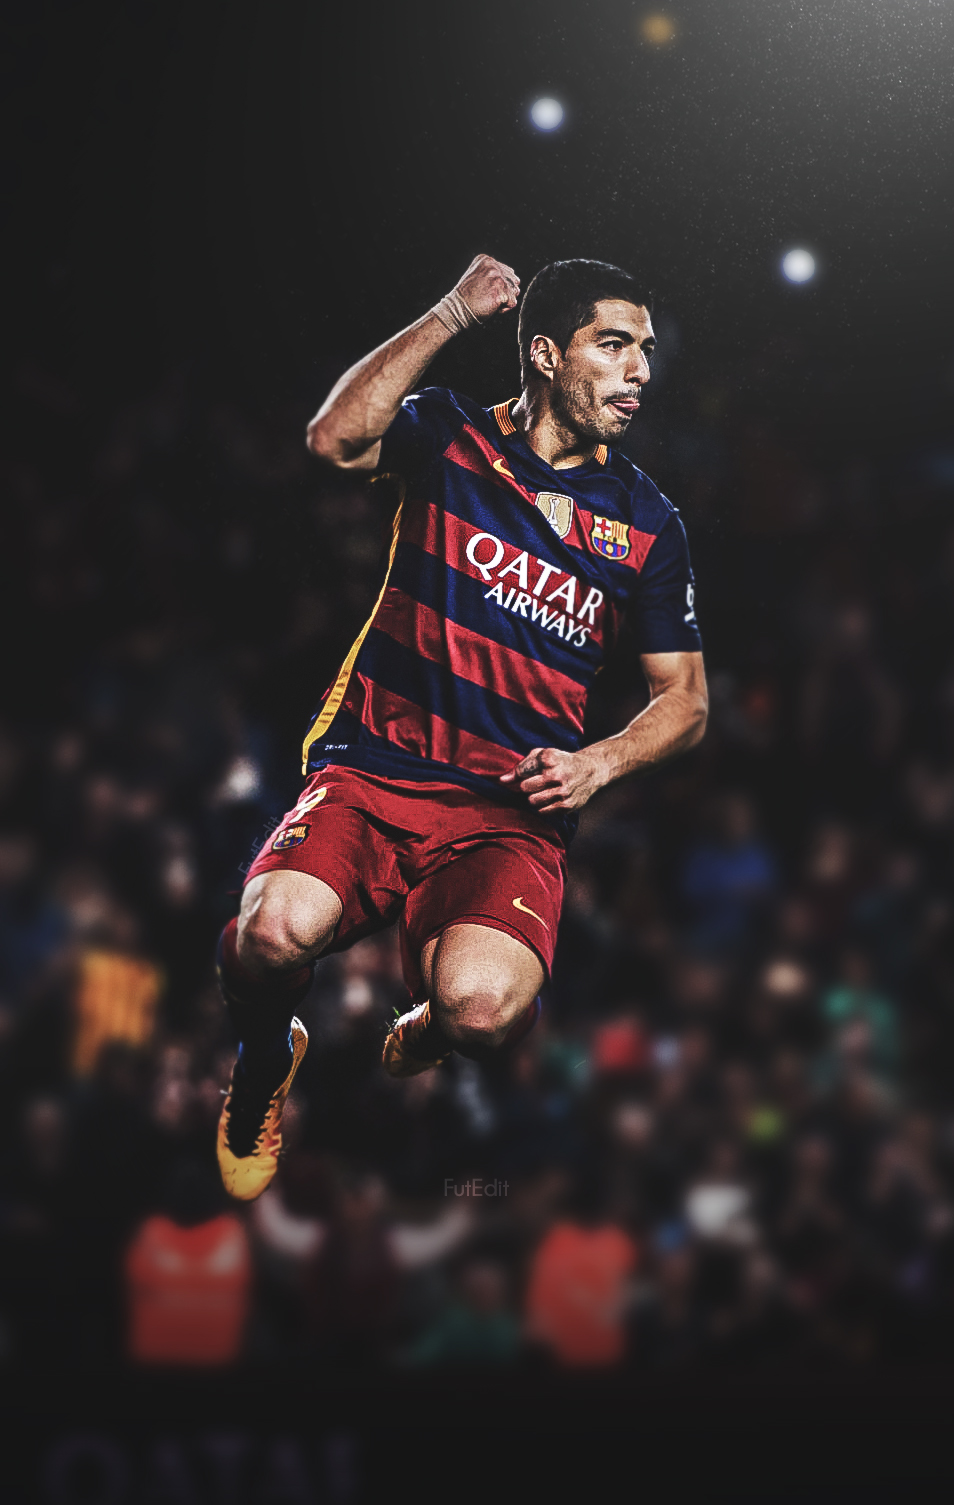 Luis Suarez IPhone Wallpapers WeNeedFun 954x1505